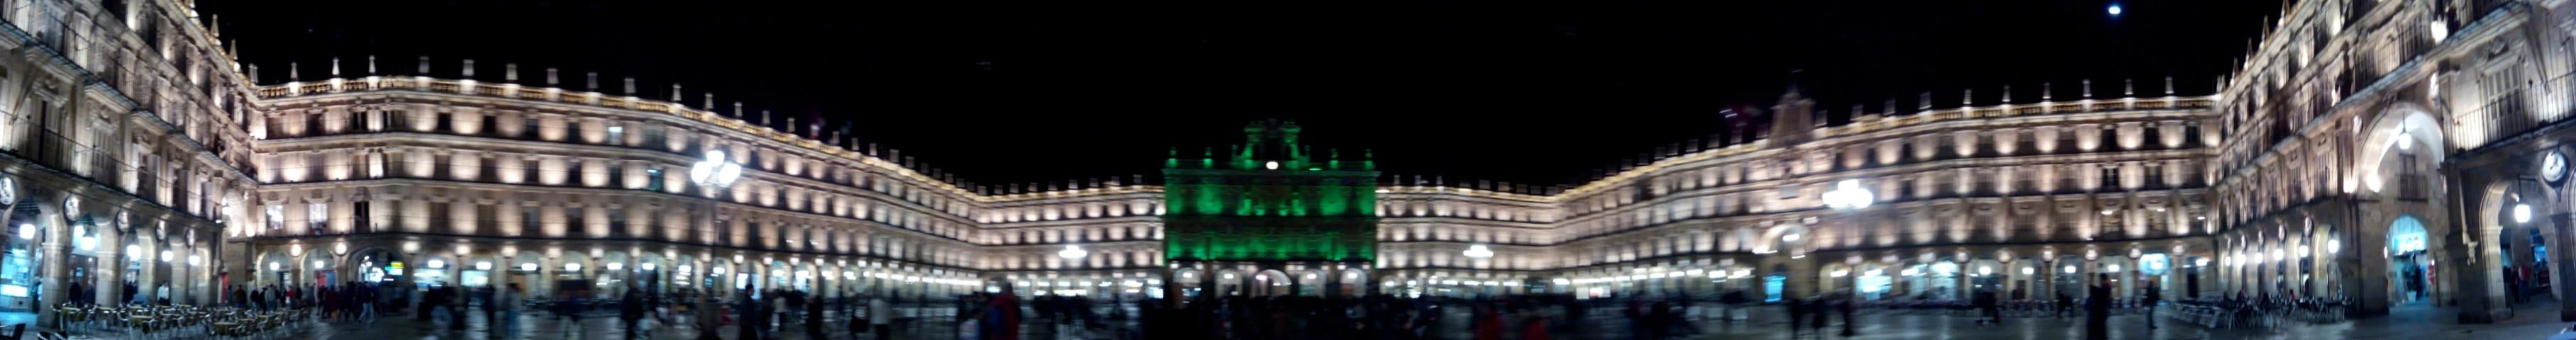 Skyline en Plaza Mayor